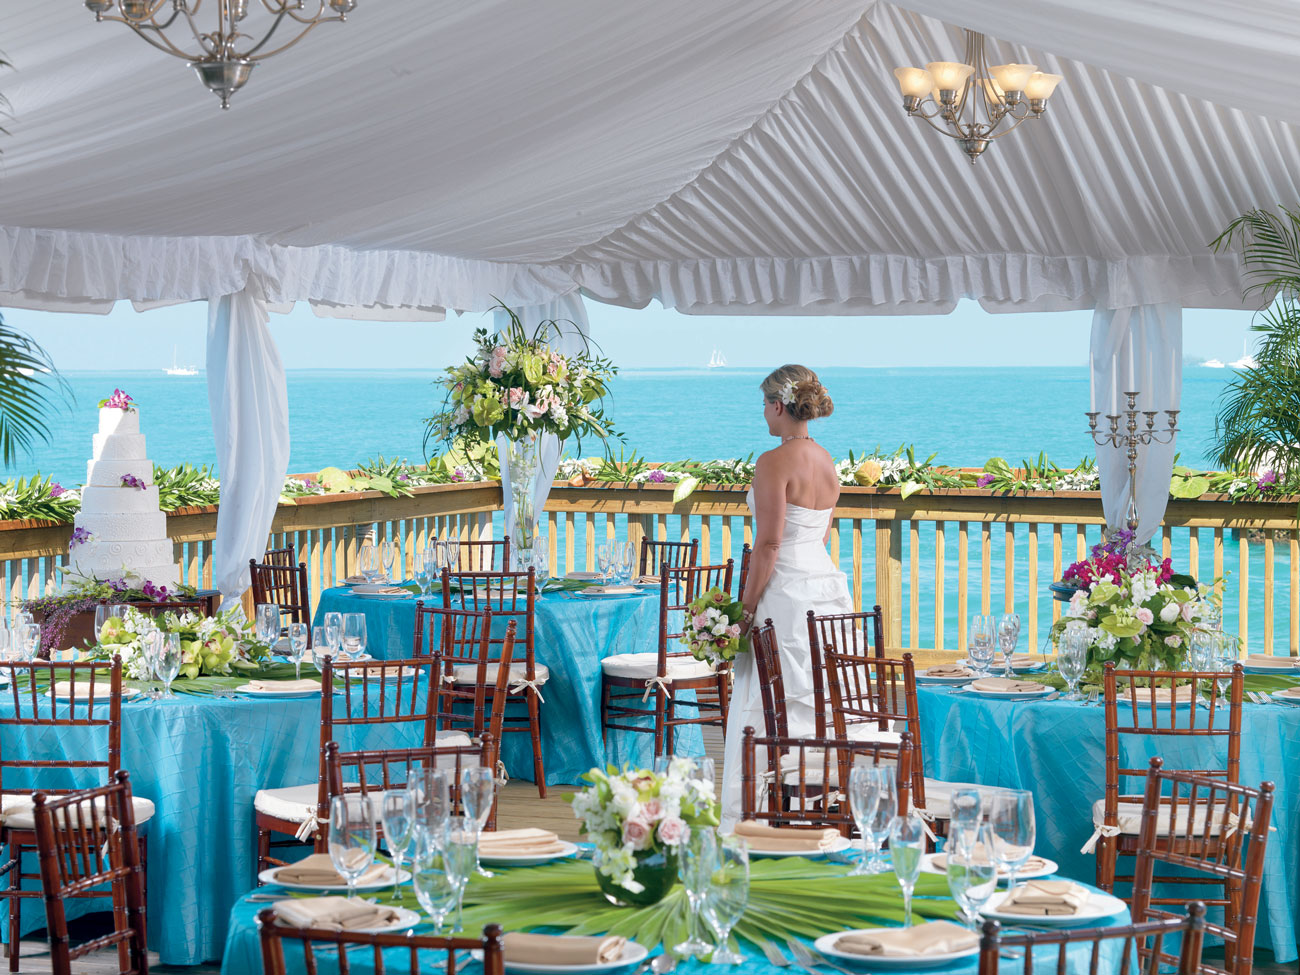 Ocean Key Resort & Spa, Florida's Southernmost Point